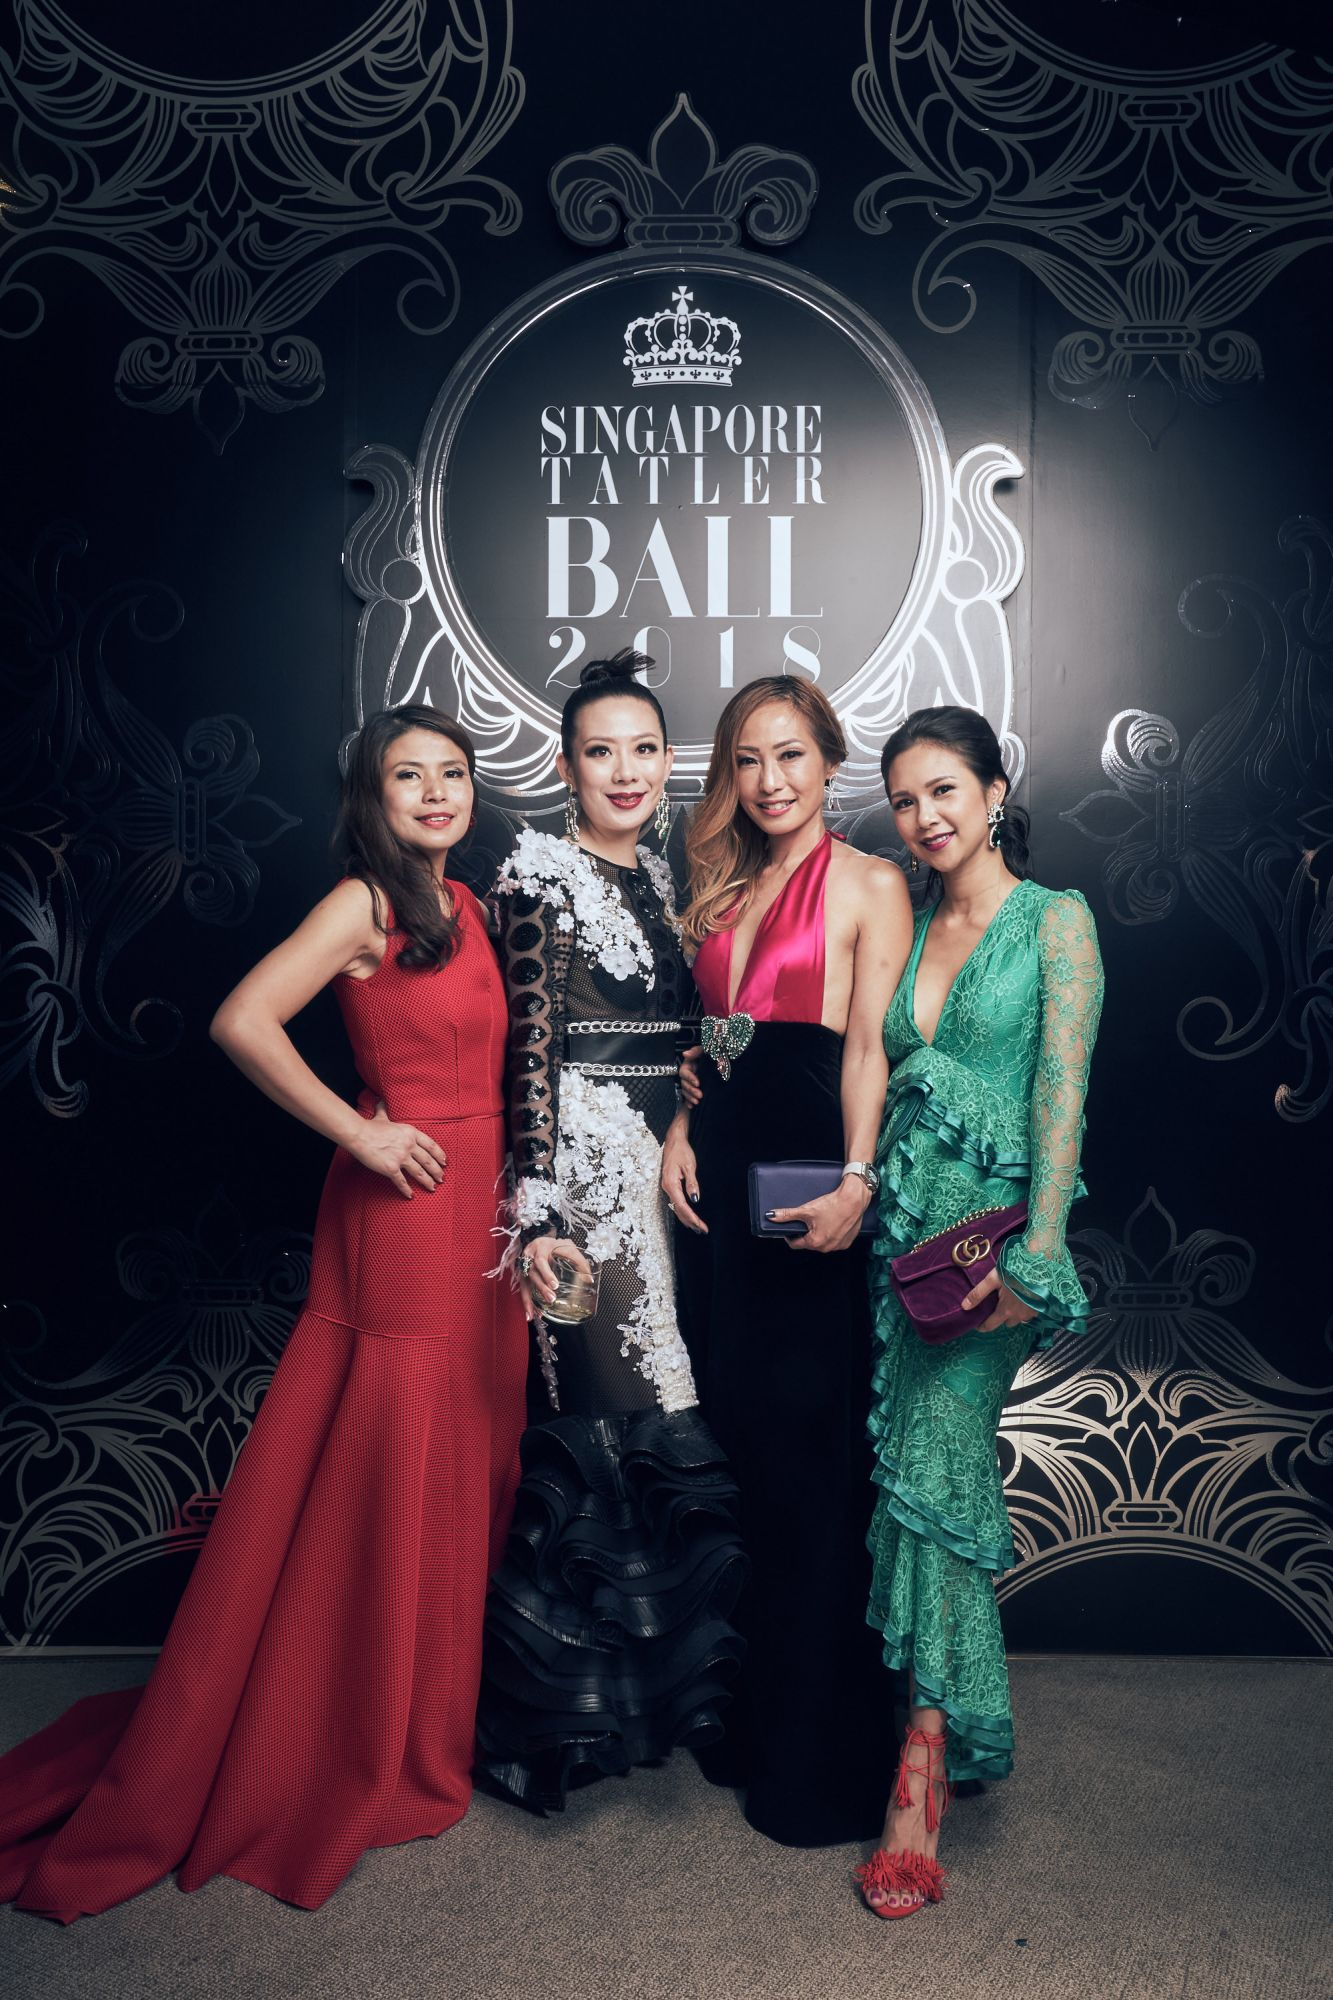 Marilyn Lum, Stephanie Lee, Tan Min-Li, Belinda Huber